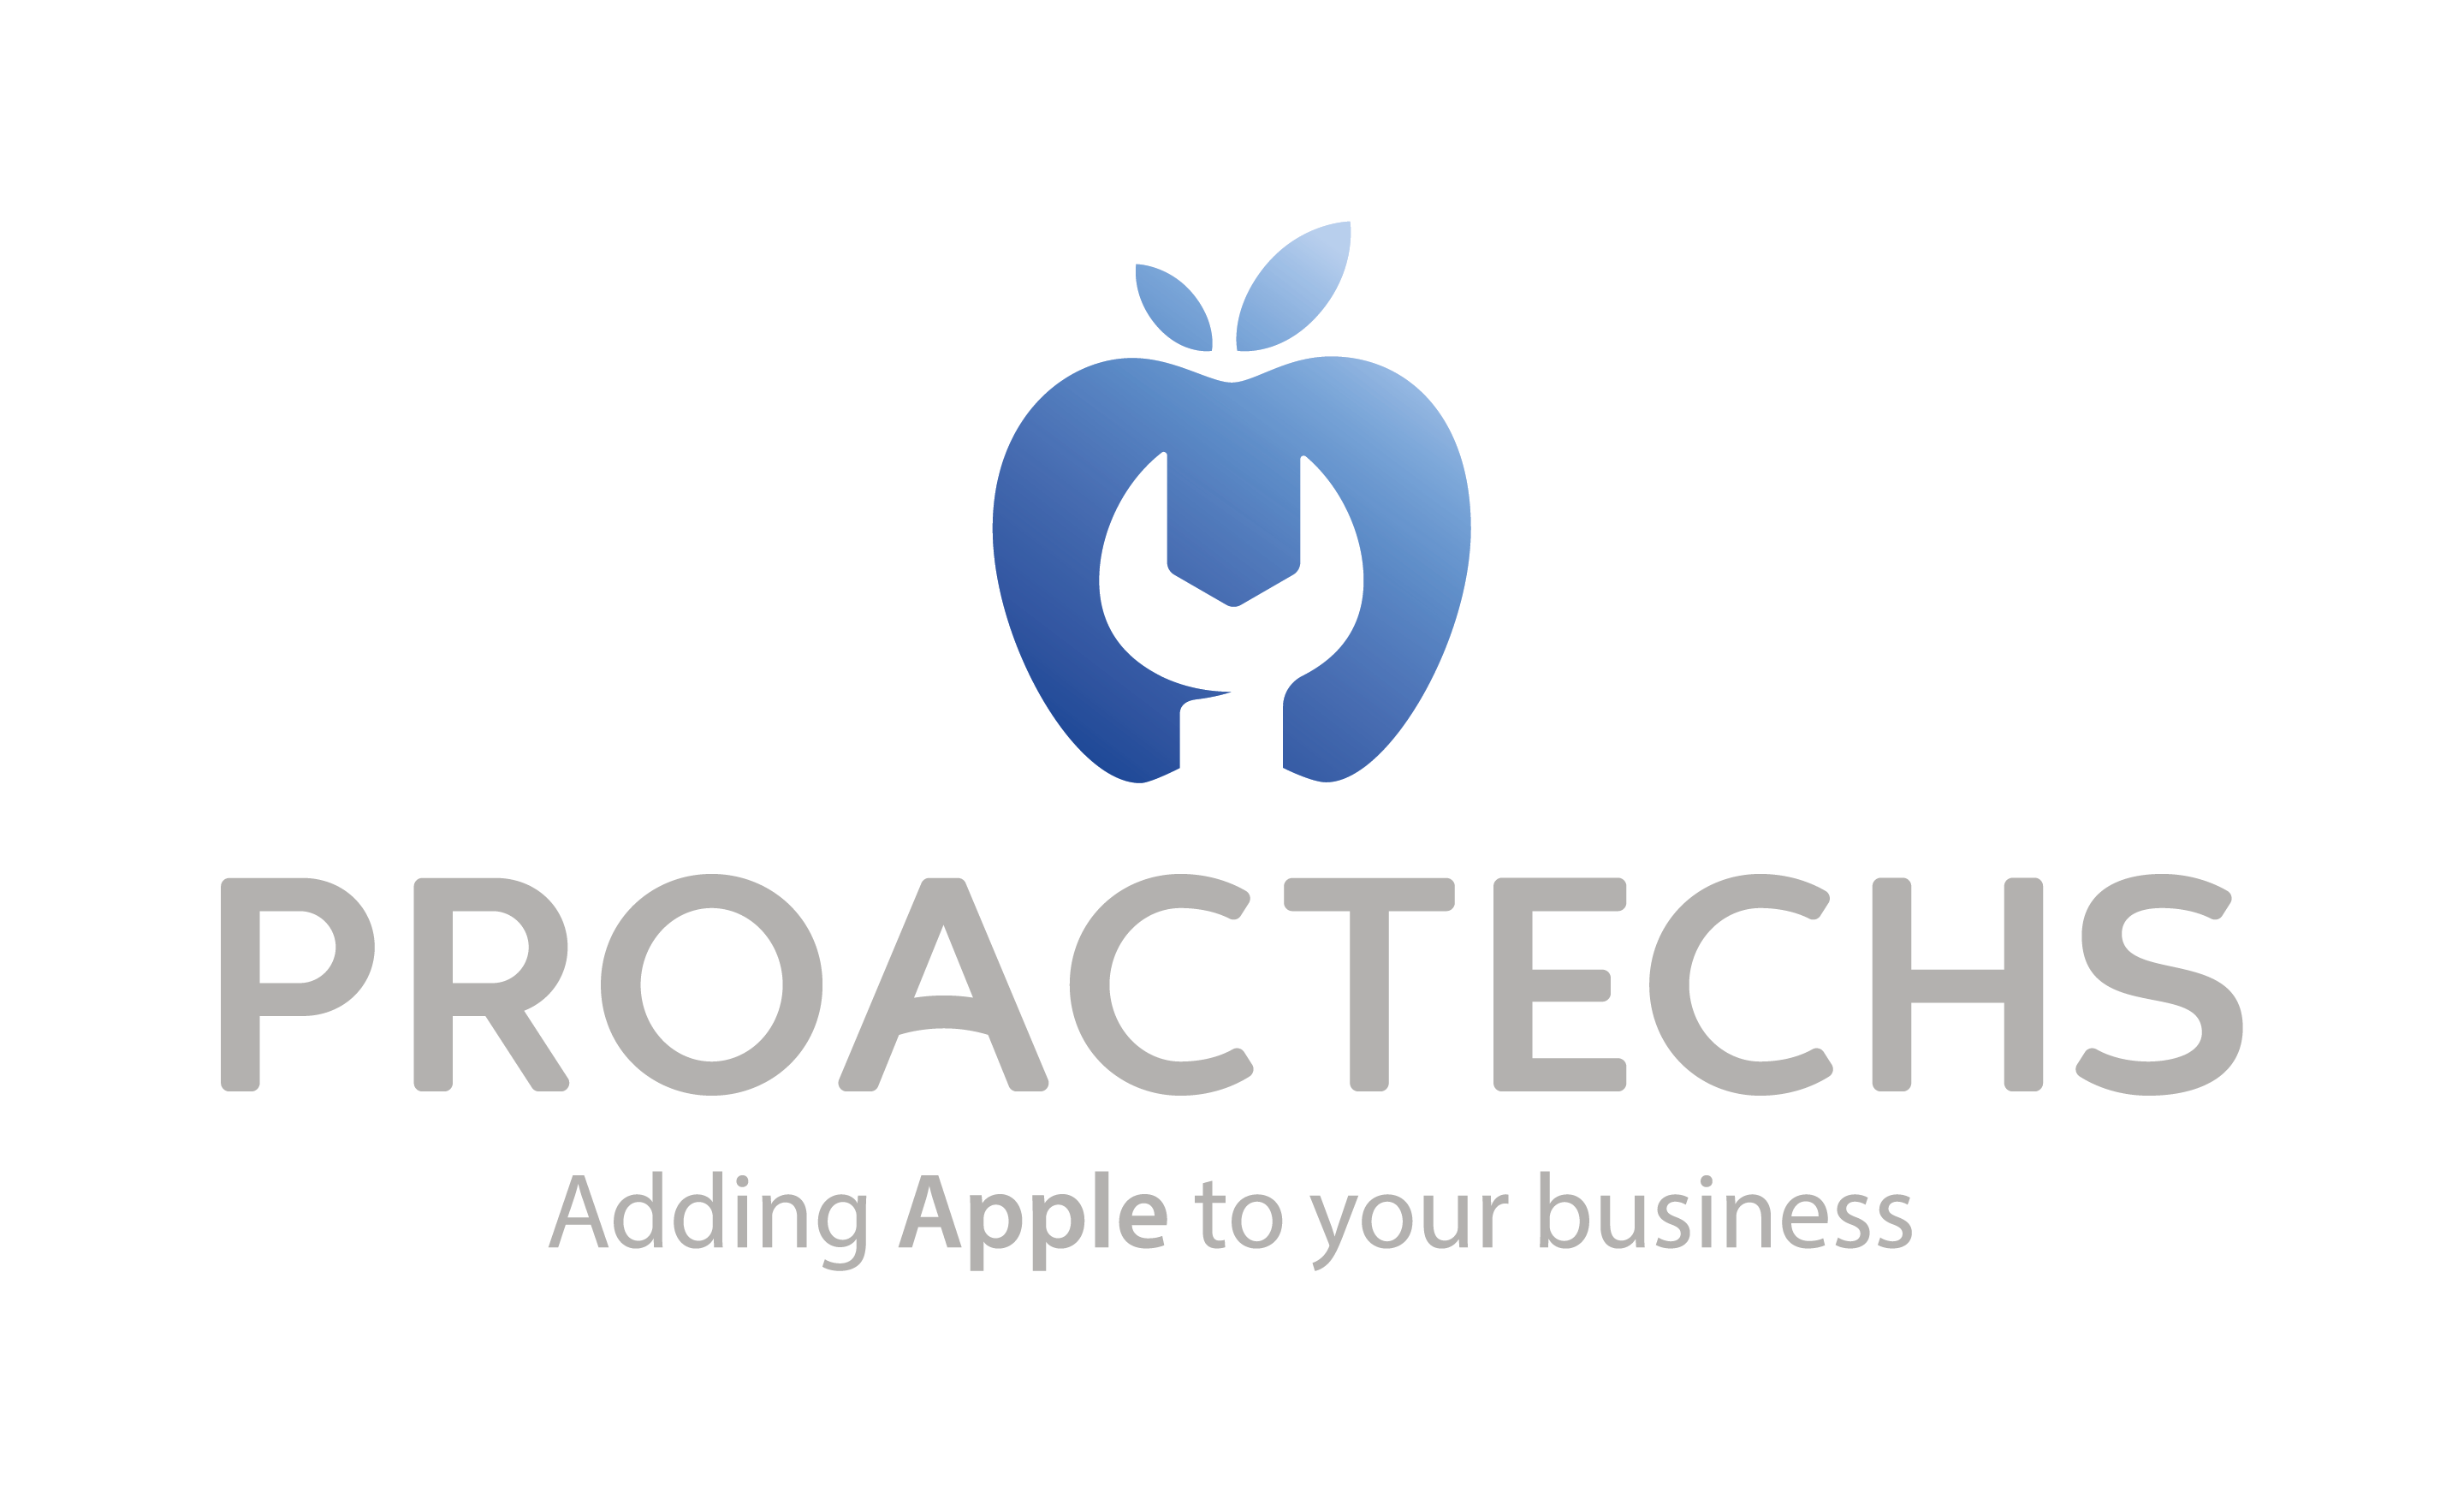 PROACTECHS by Escobar Solutions